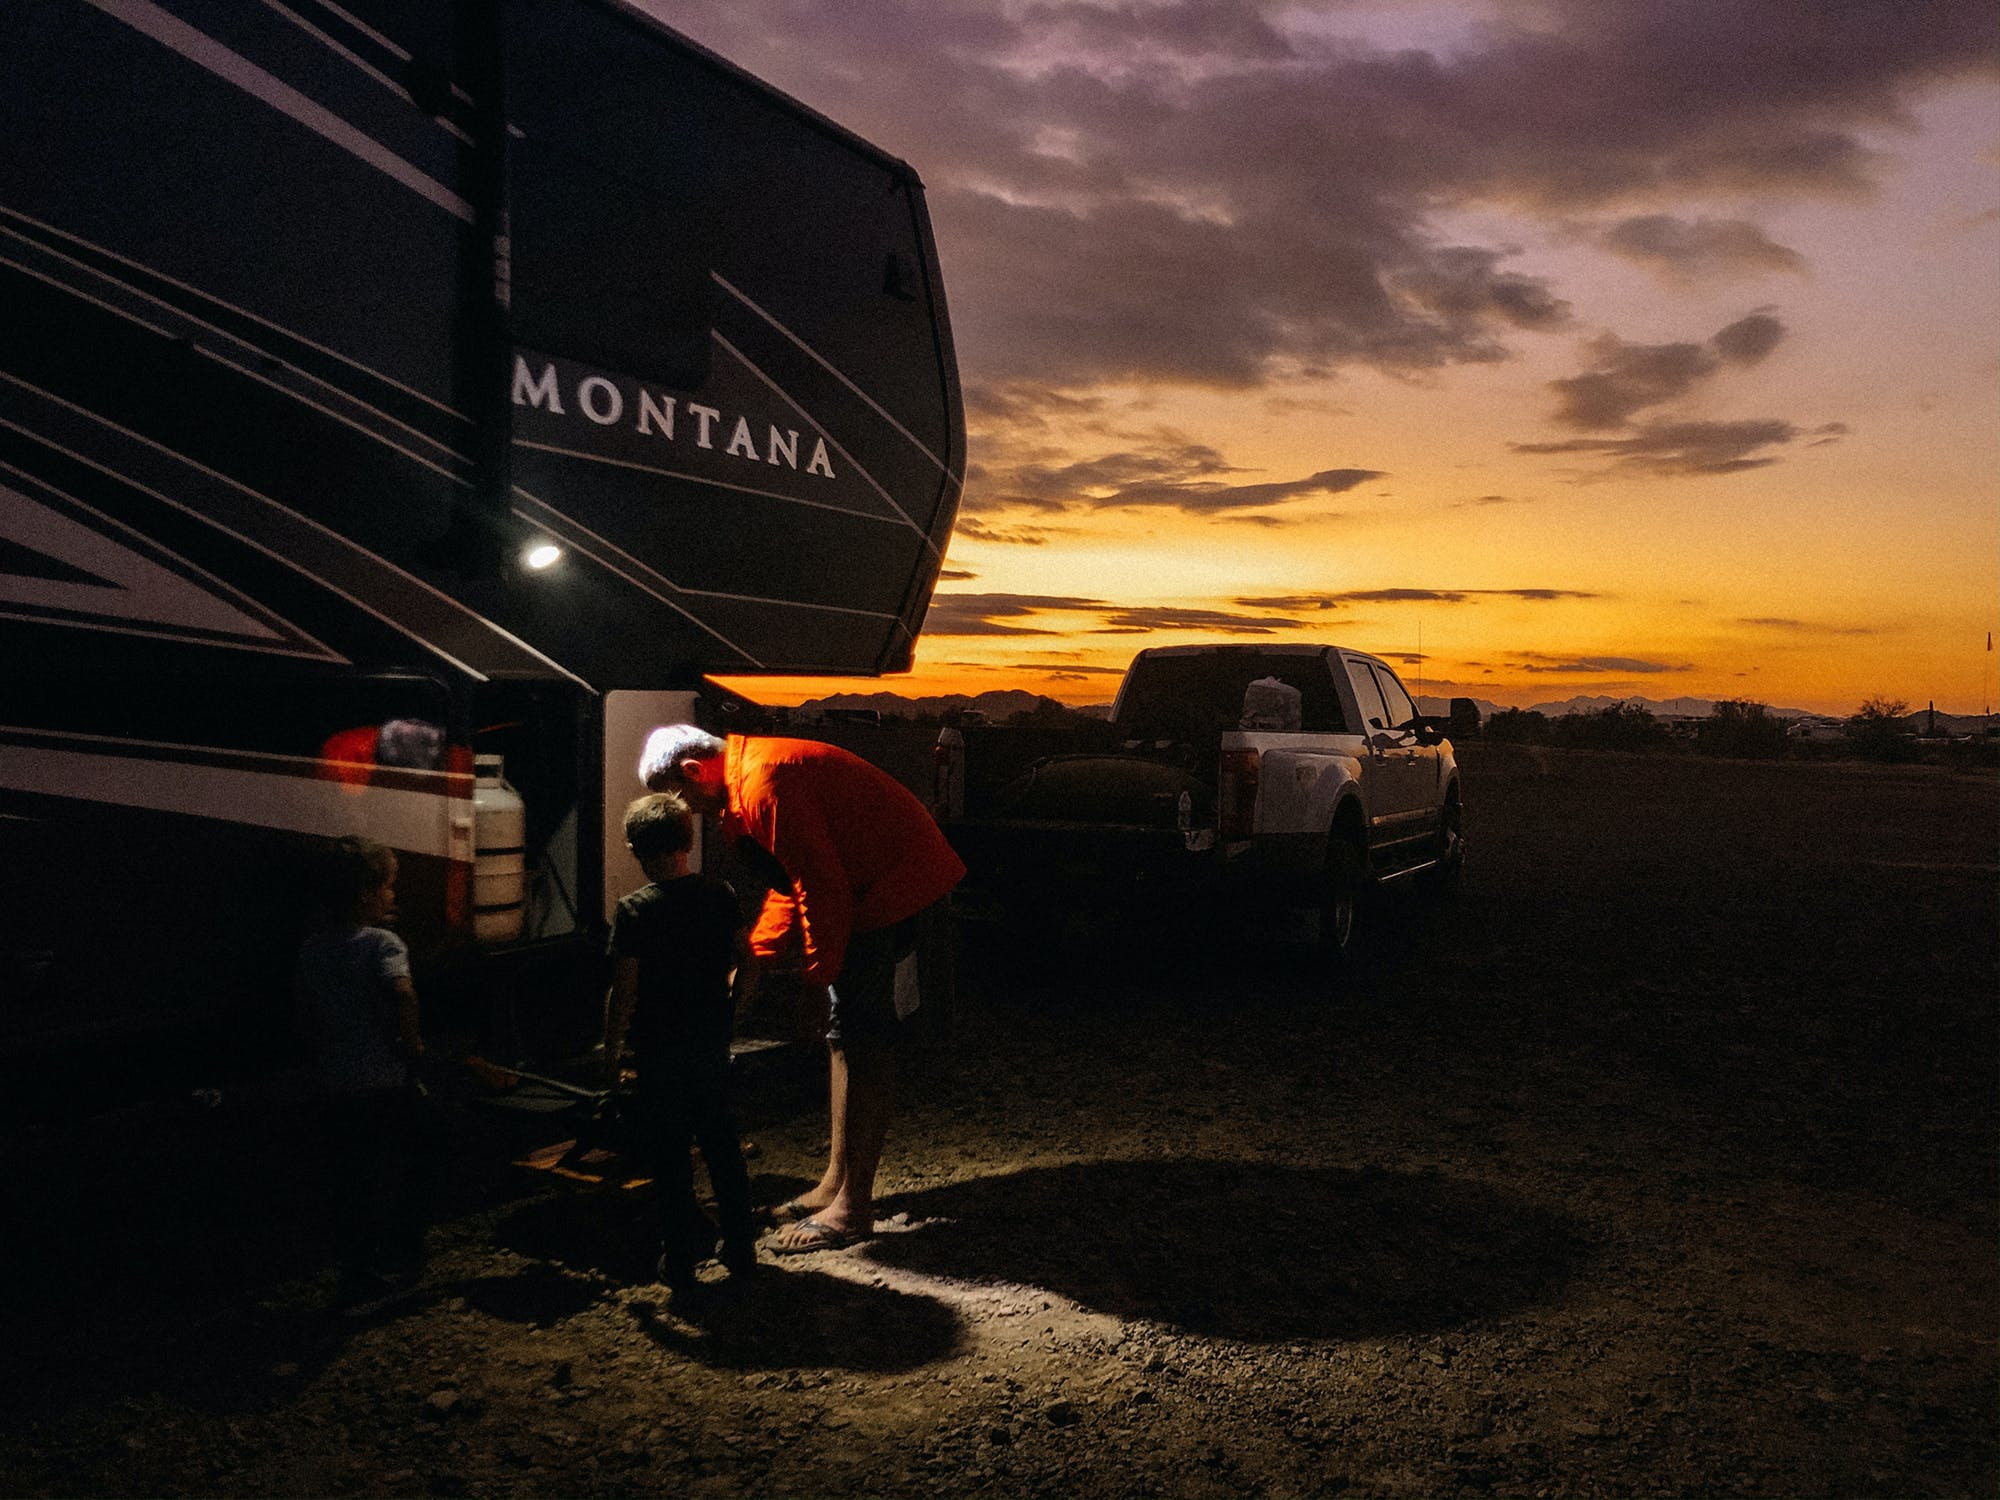 A father and son near the LP tank of their fifth wheel at sunset